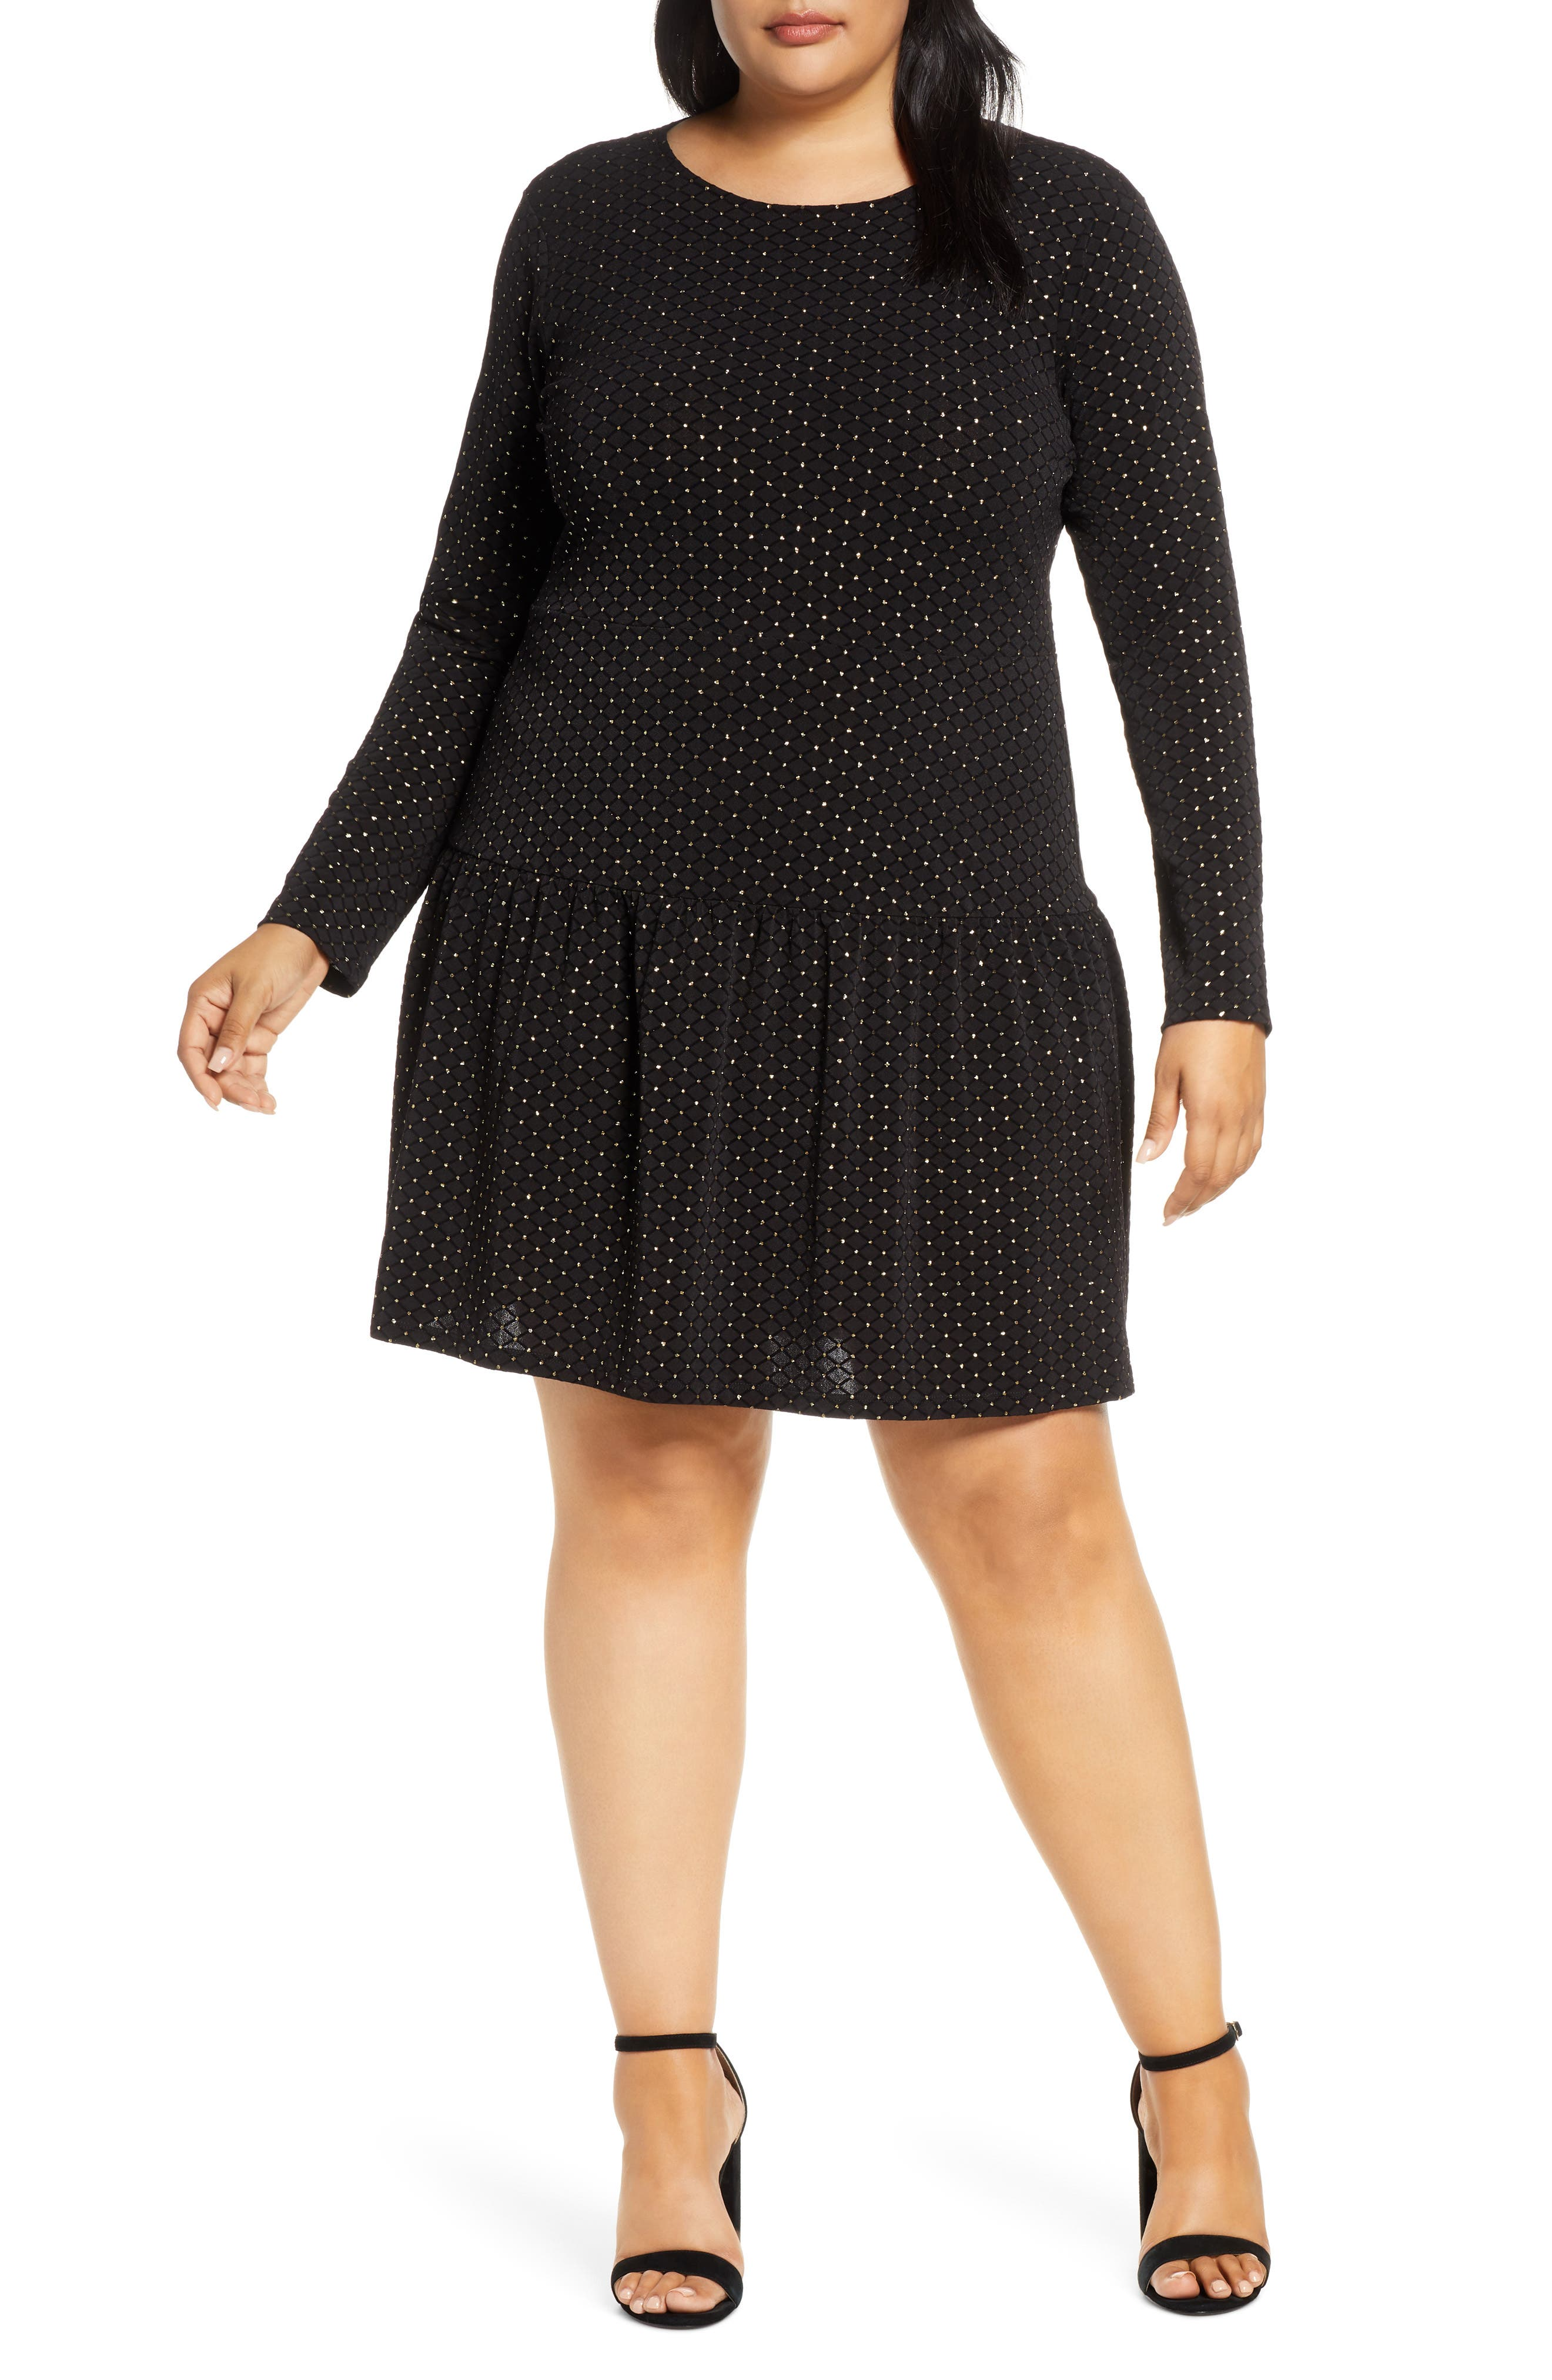 1920s Day Dresses, Tea Dresses, Mature Dresses with Sleeves Plus Size Womens Michael Michael Kors Long Sleeve Drop Waist Dress $155.00 AT vintagedancer.com